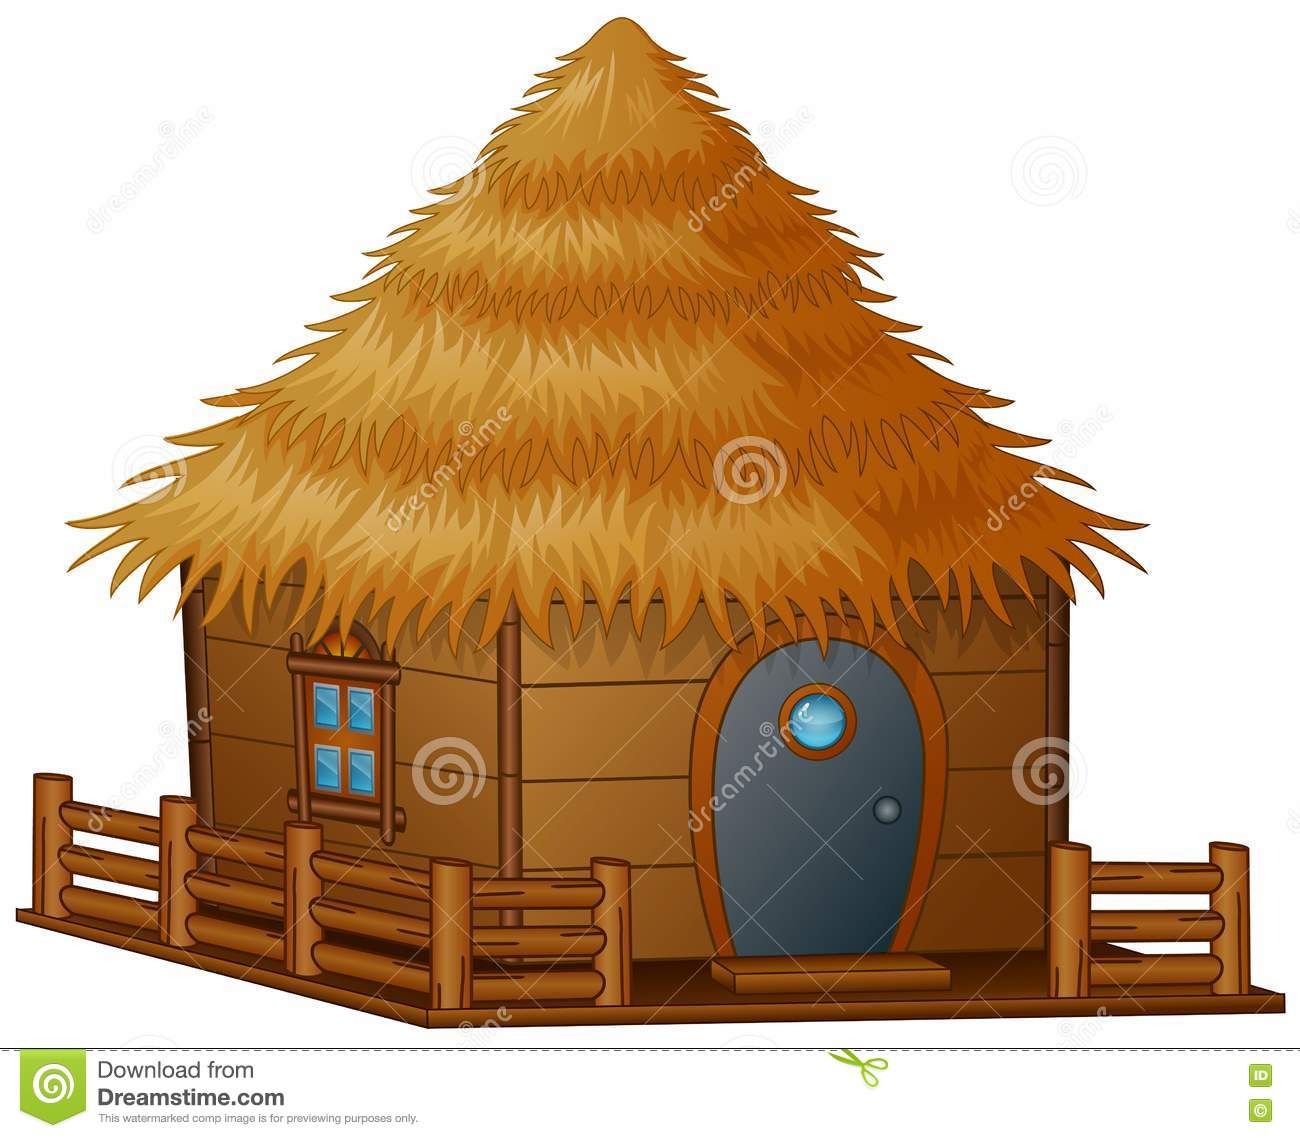 Hagrid S Hut 379083790 further Altamont 1969 Revisited in addition Baba Jaga 356569958 further En Cort2 furthermore Stock Image Burning House Isolated White Image16469791. on hut house drawing